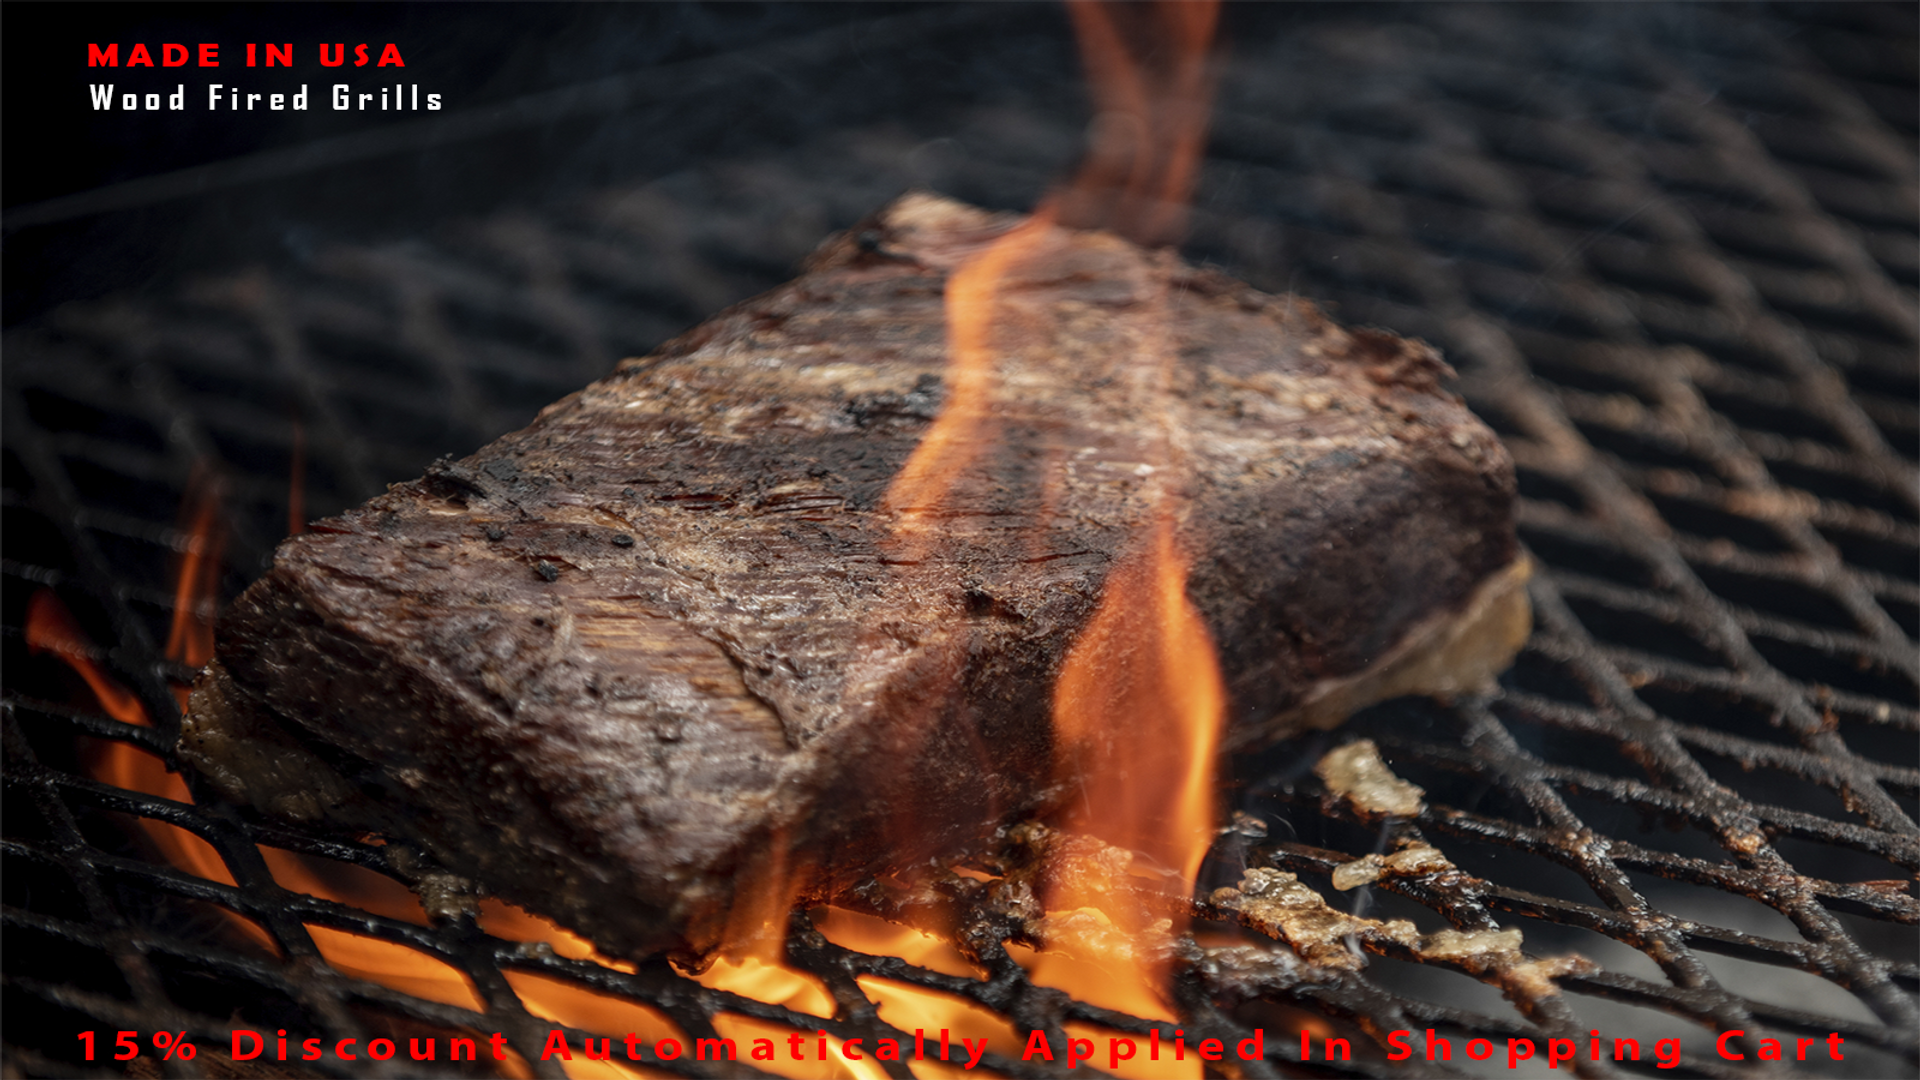 Wood Fired Santa Maria Grilling beef.